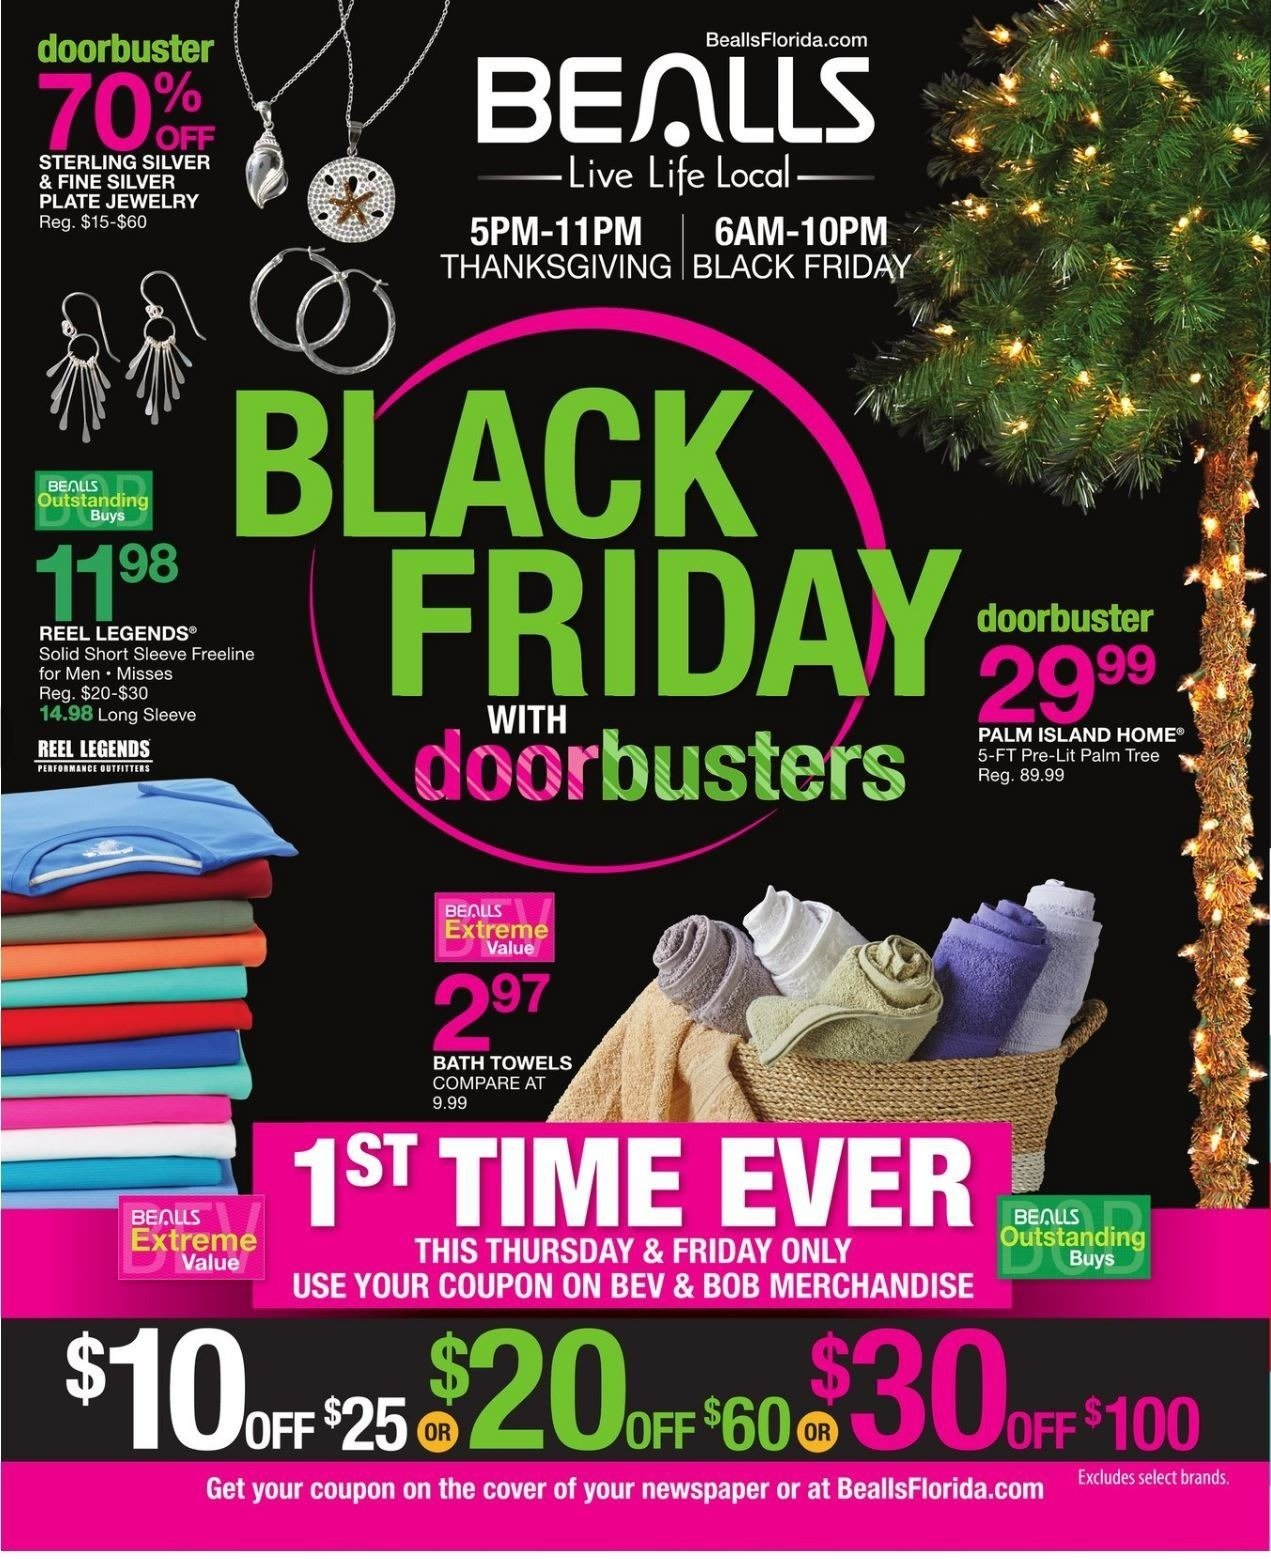 Bealls Florida Black Friday 2015: Bealls Department Stores 2018 Black Friday Ad